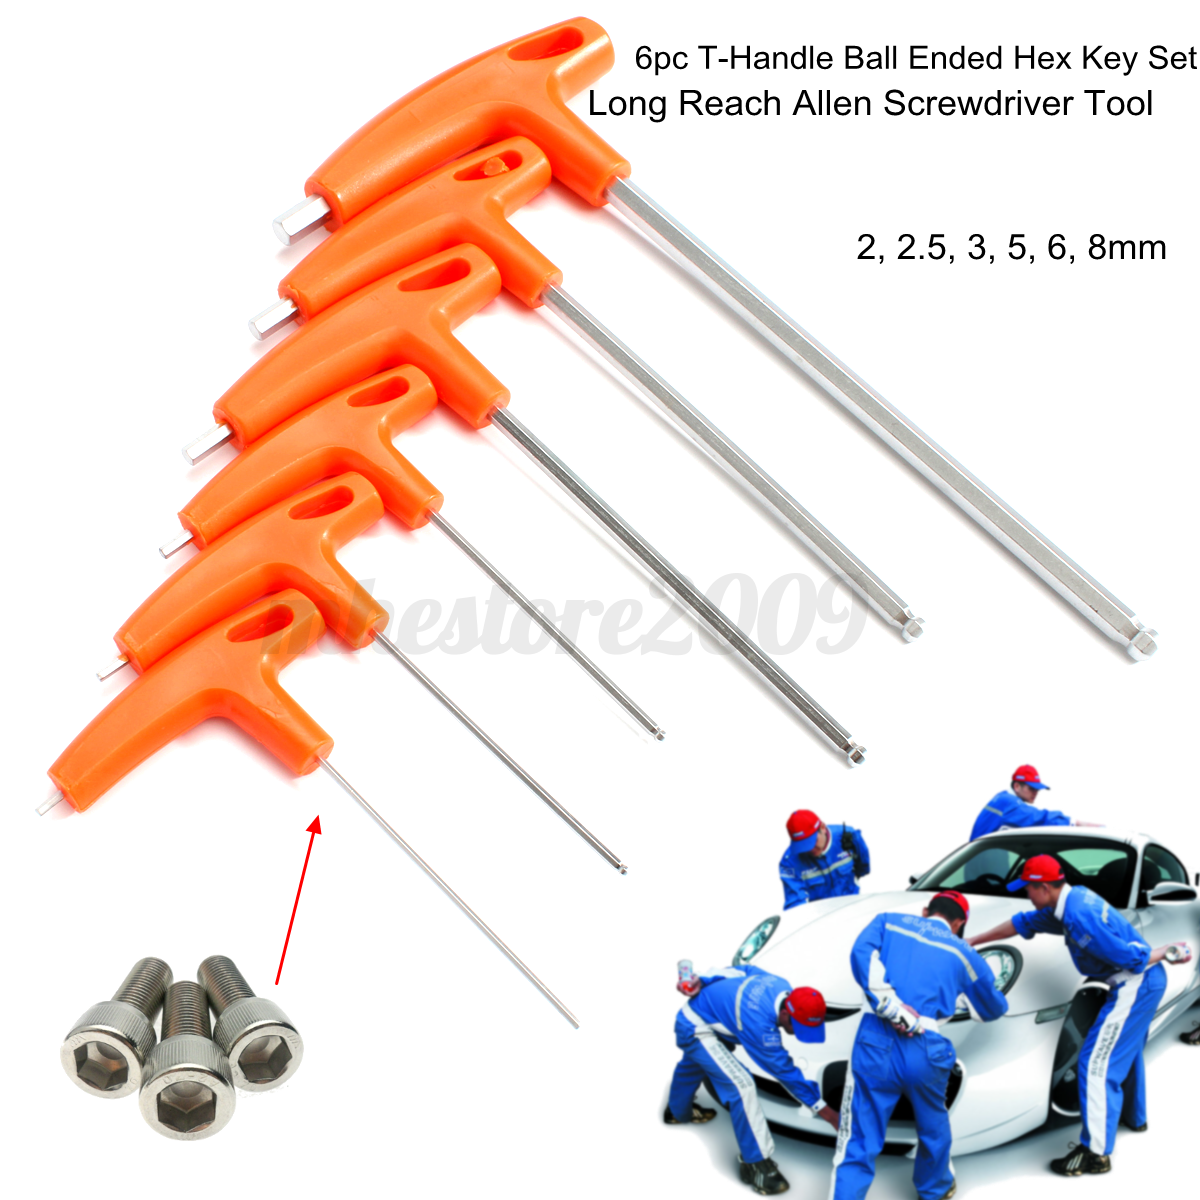 6pcs T Handle Allen Wrench Ball End Hex Key Set Long Reach